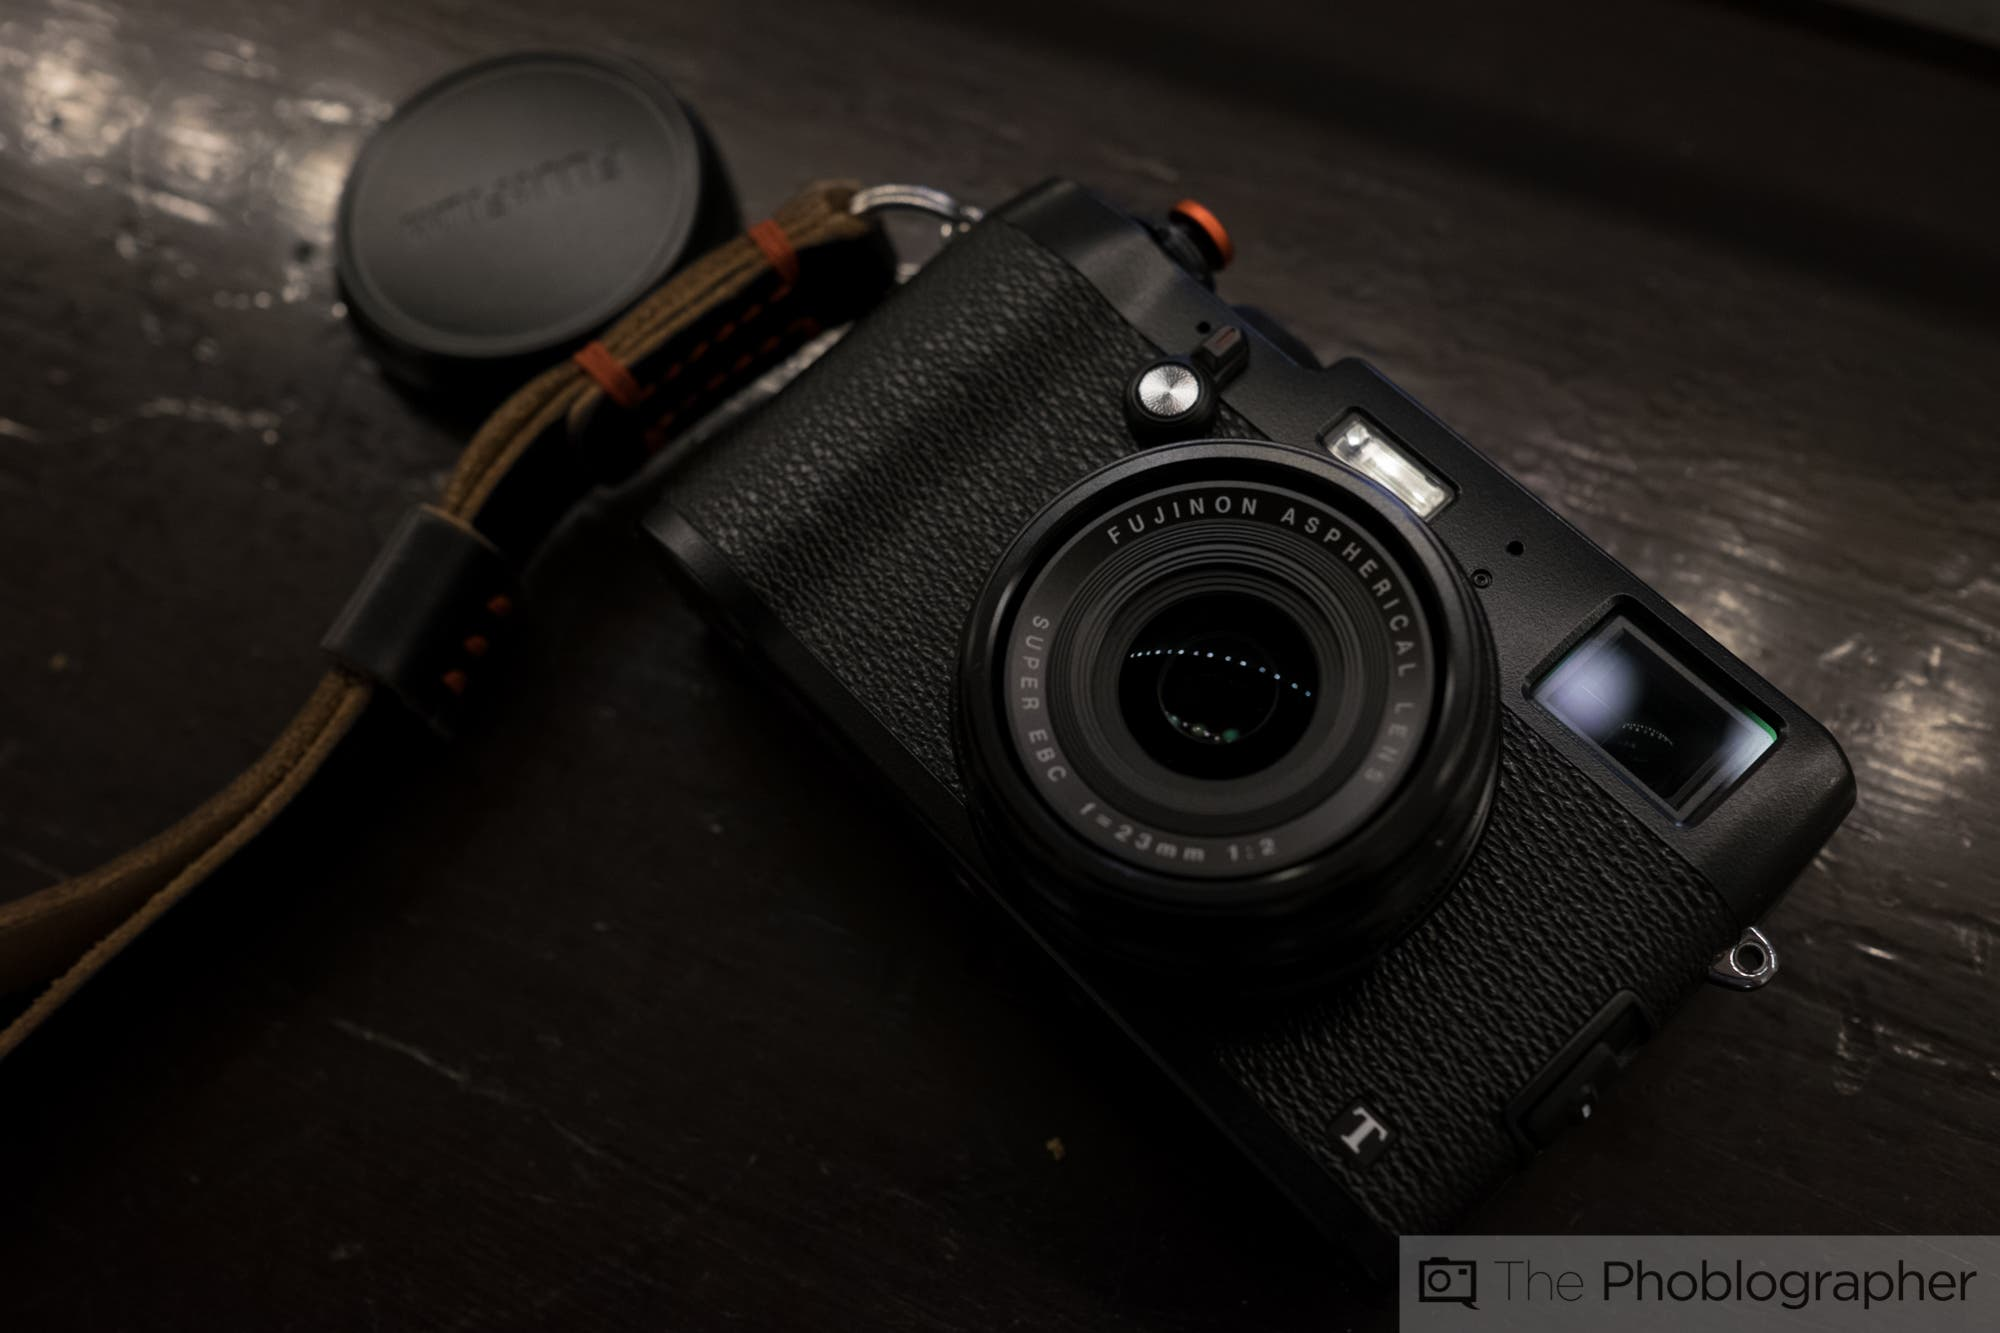 Fujifilm Explains the Difference between the 23mm f2 Lens on X100 vs the Weather Sealed Version